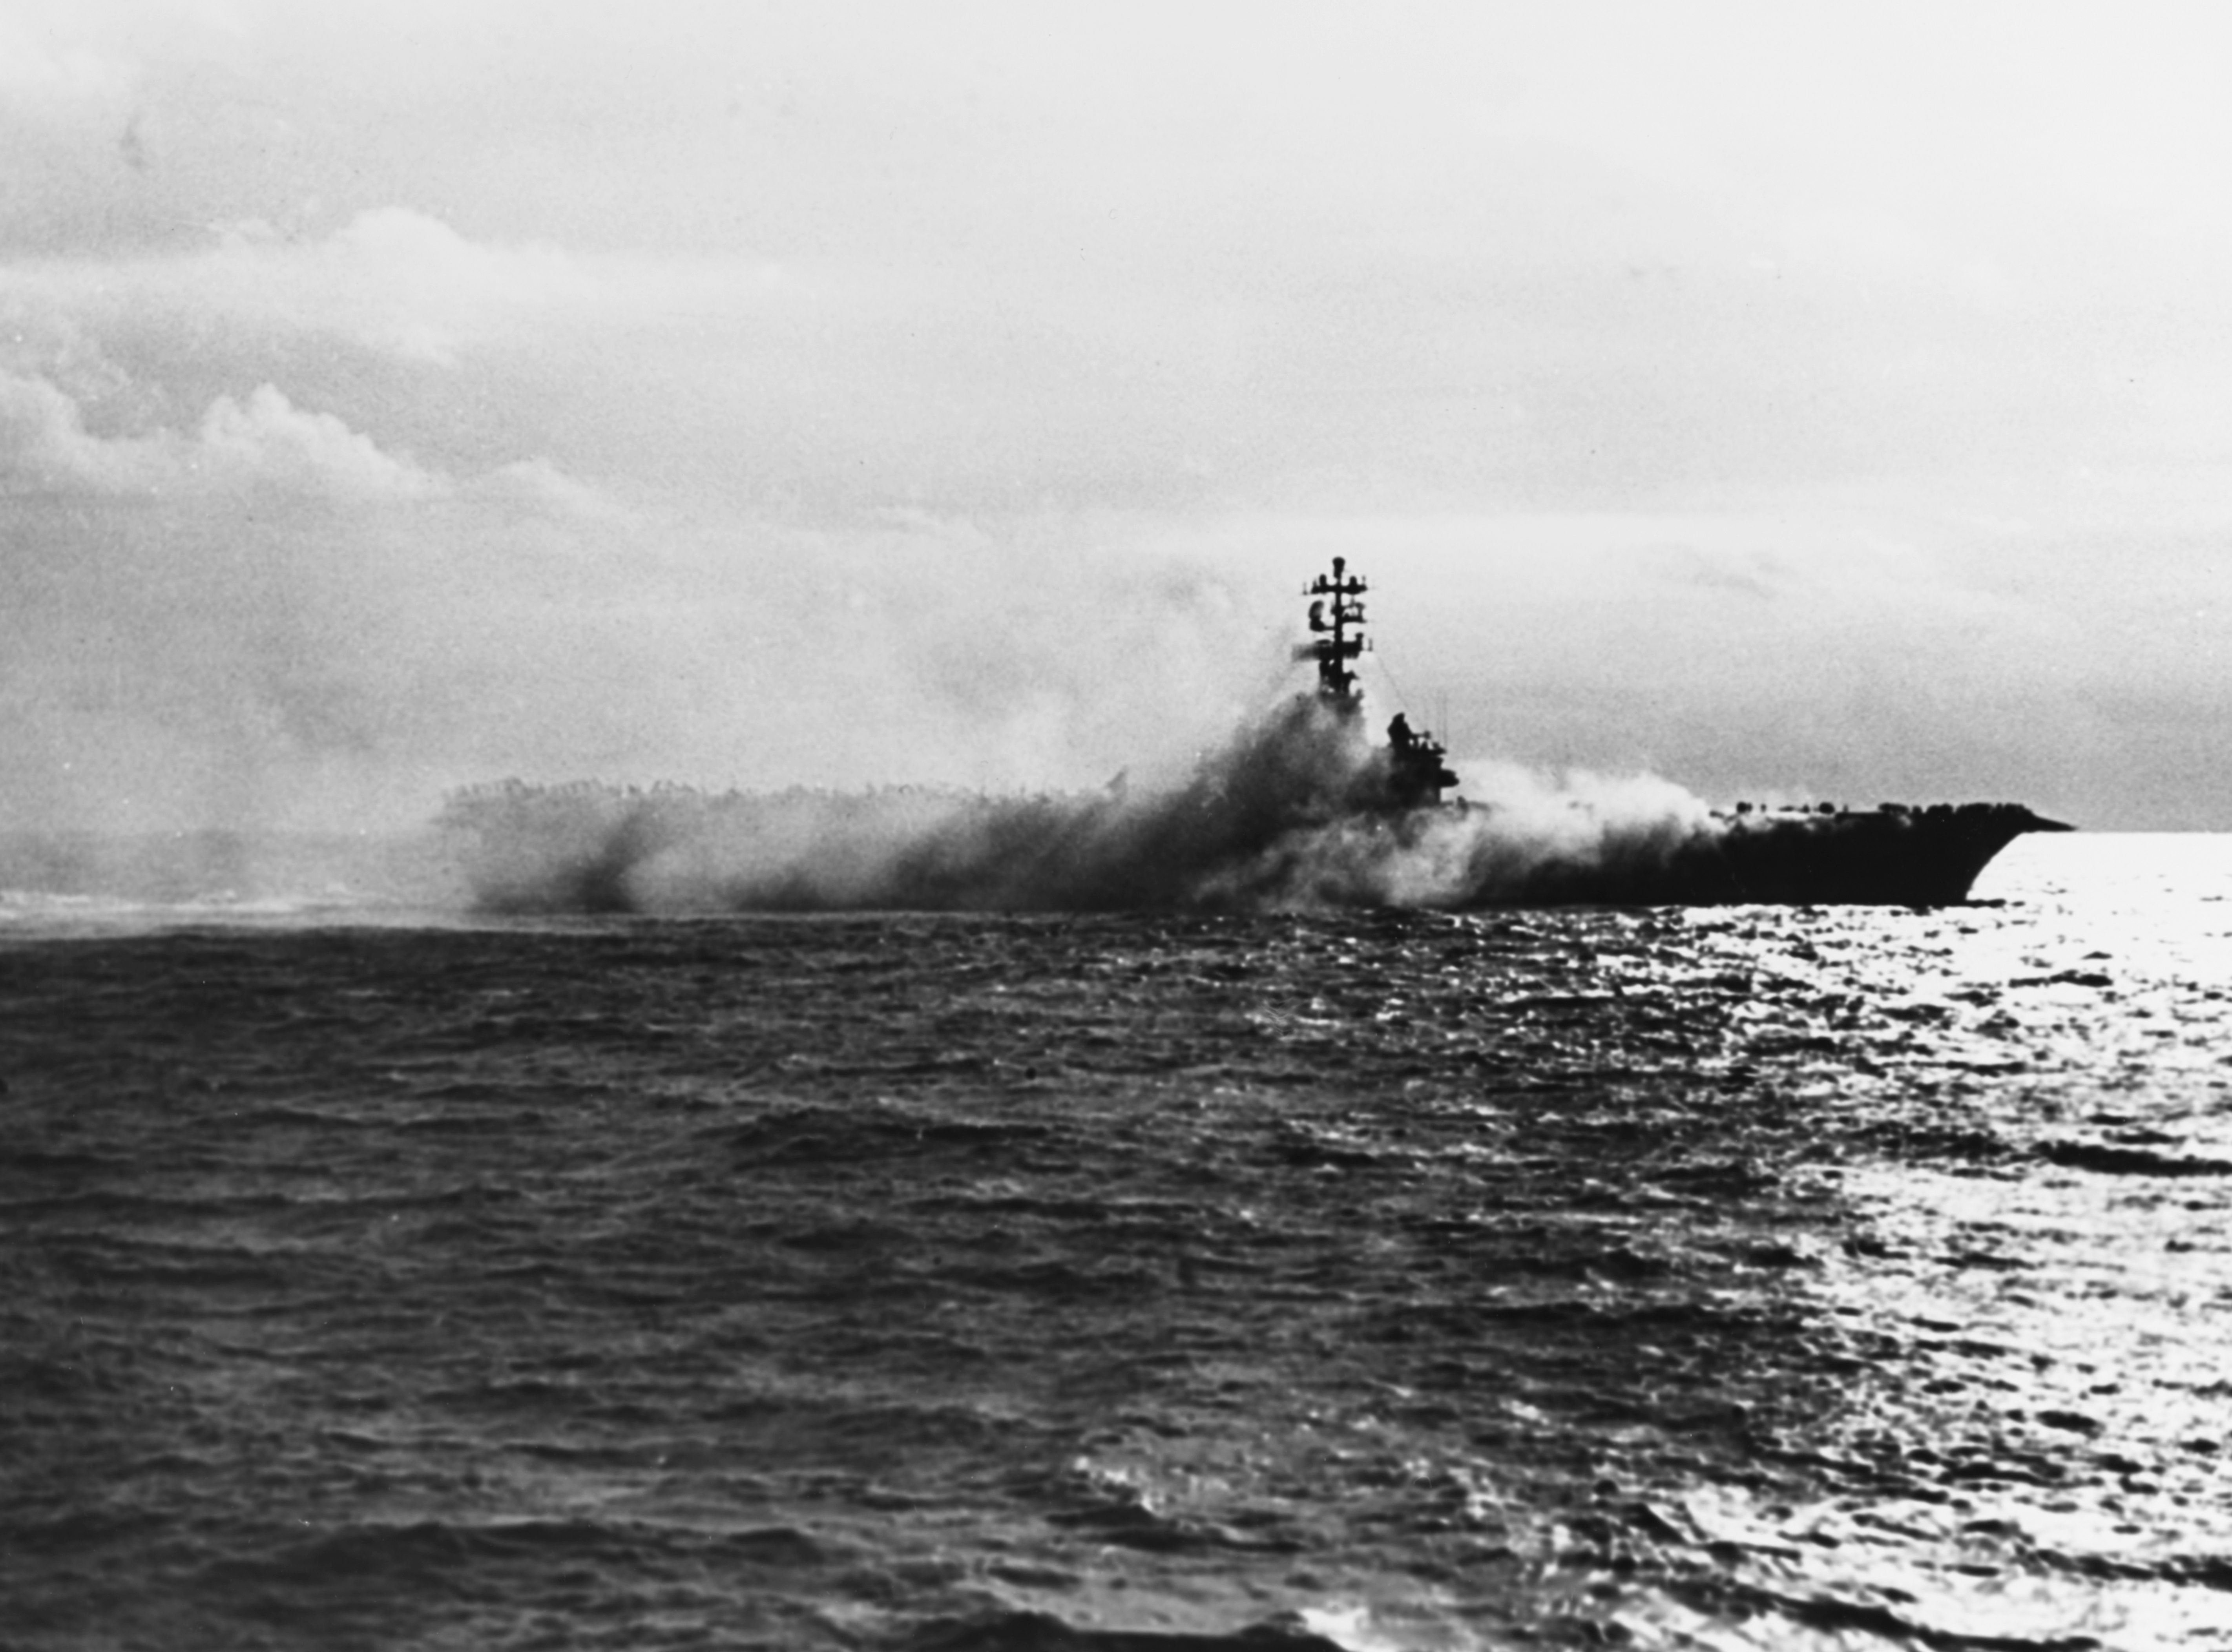 http://upload.wikimedia.org/wikipedia/commons/2/24/USS_Oriskany_%28CV-34%29_on_fire%2C_26_October_1966.jpg